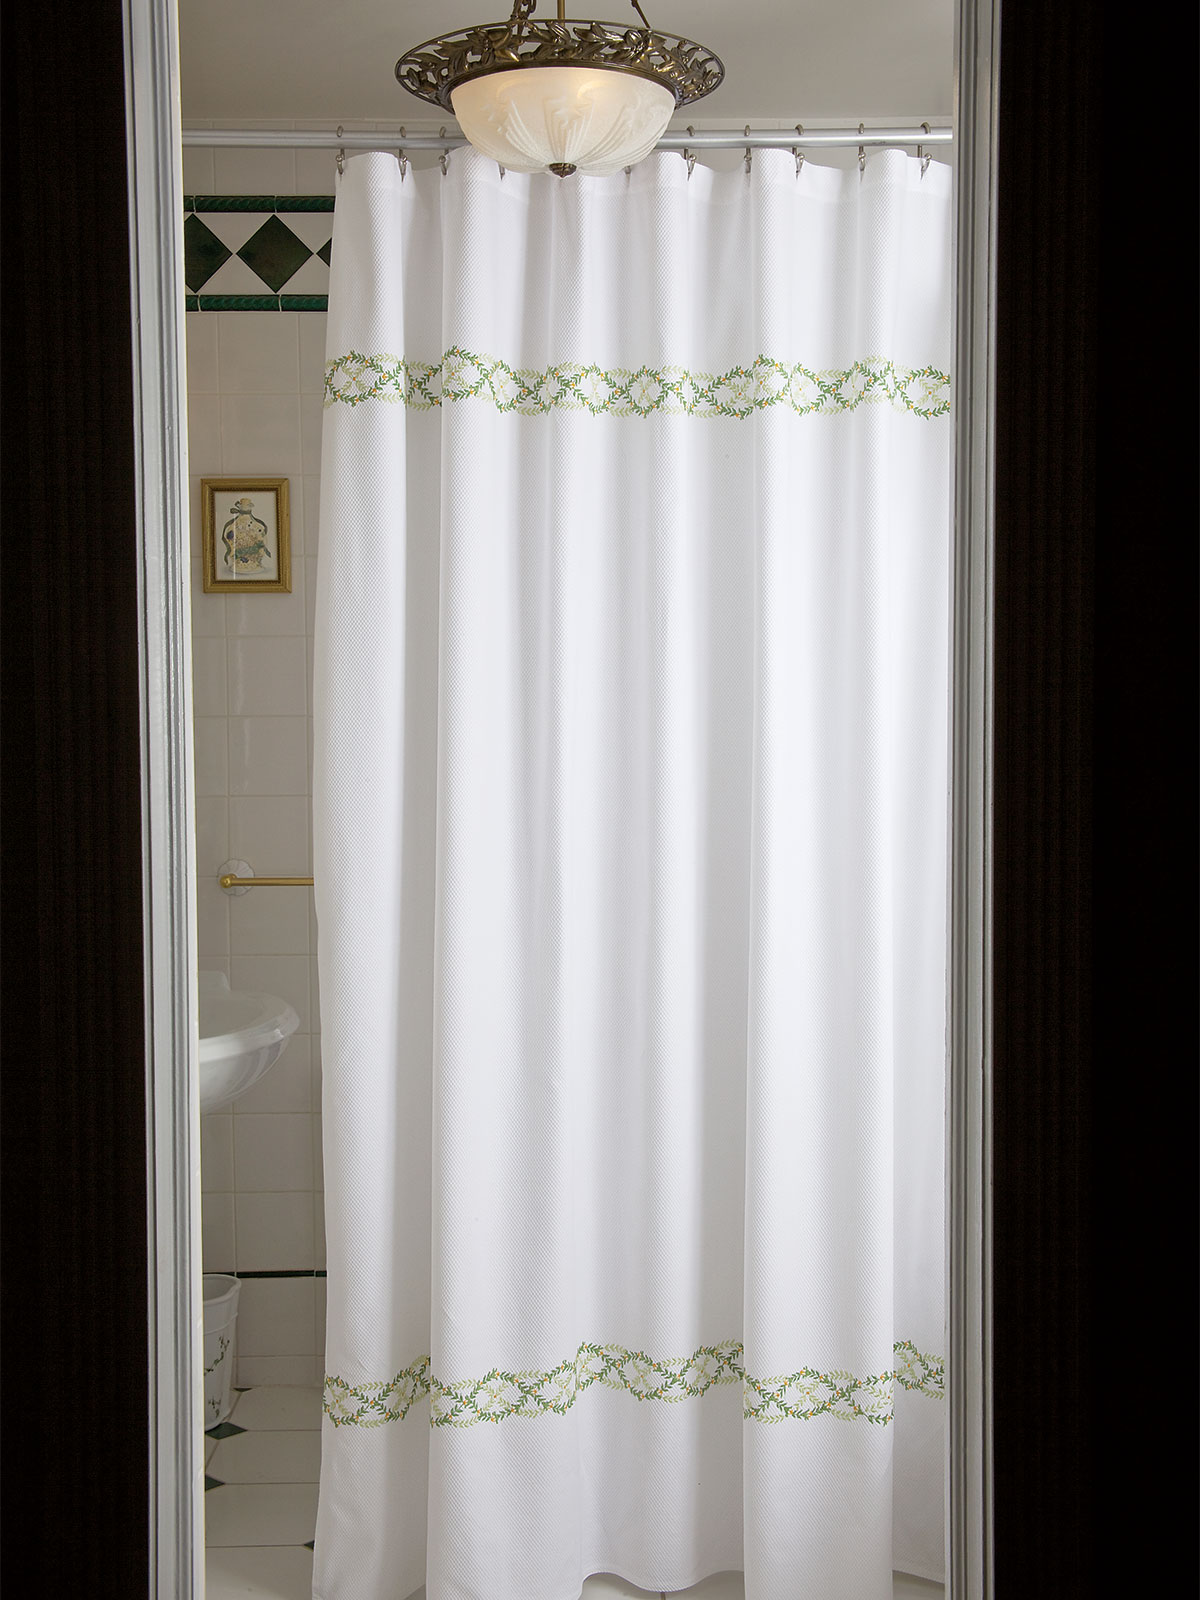 Linens And Things Shower Curtains BestCurtains